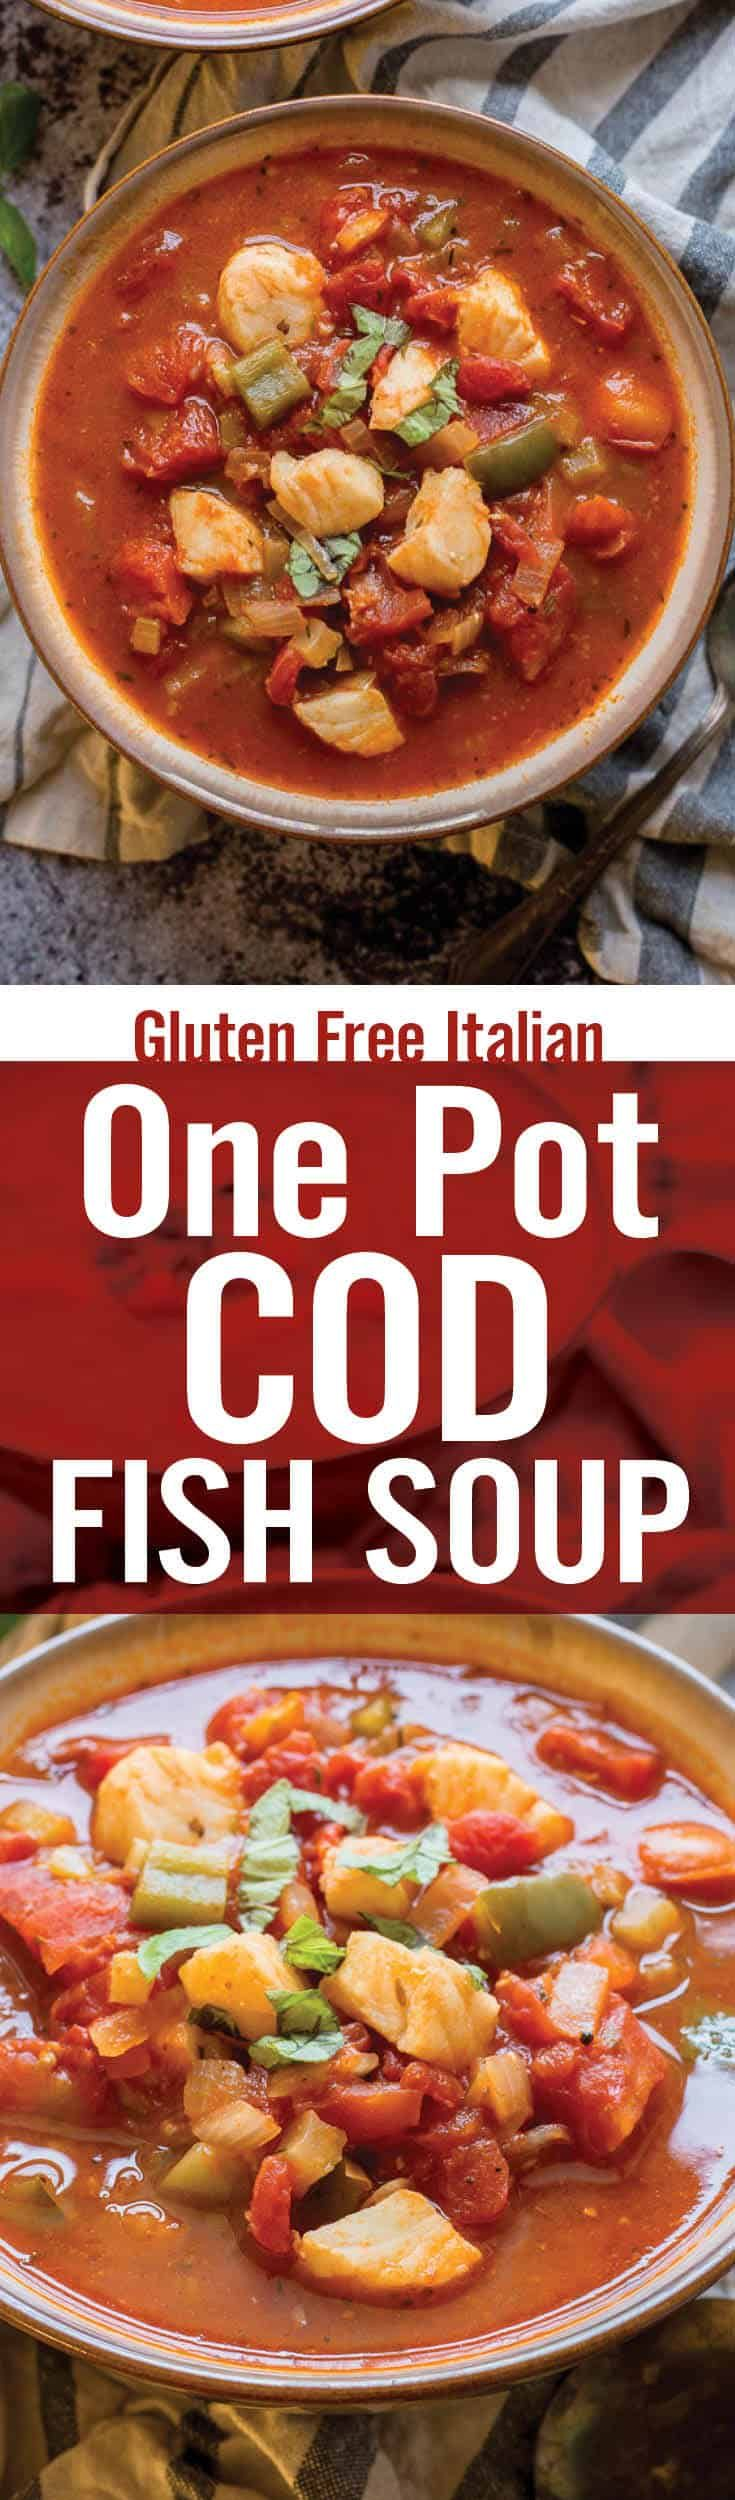 Quick and healthy One Pot Cod Fish Soup is perfect for cold weather. Winter soup recipe with diced tomato, tomato paste, onion, garlic, bell pepper, white wine and cod whitefish. Easy gluten free one pot fish soup. - platingpixels.com